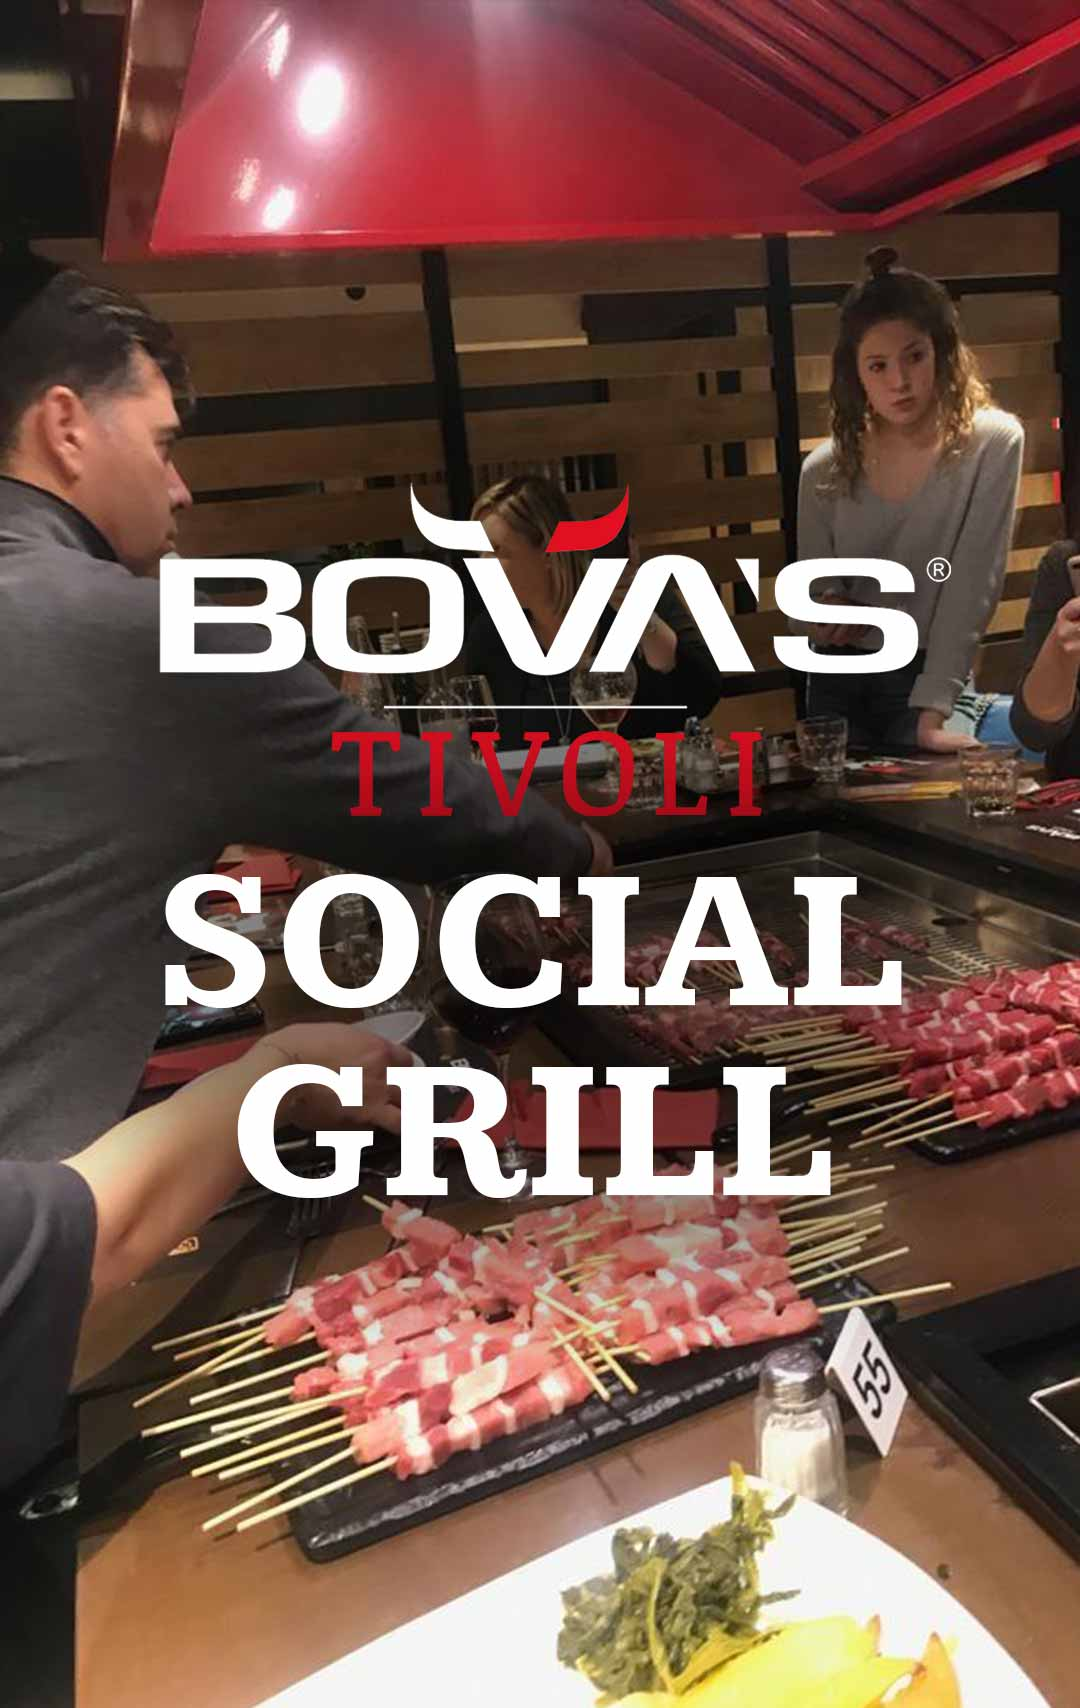 Bova's The Grill Steakhouse Ristorante Bisteccheria Roma Tivoli